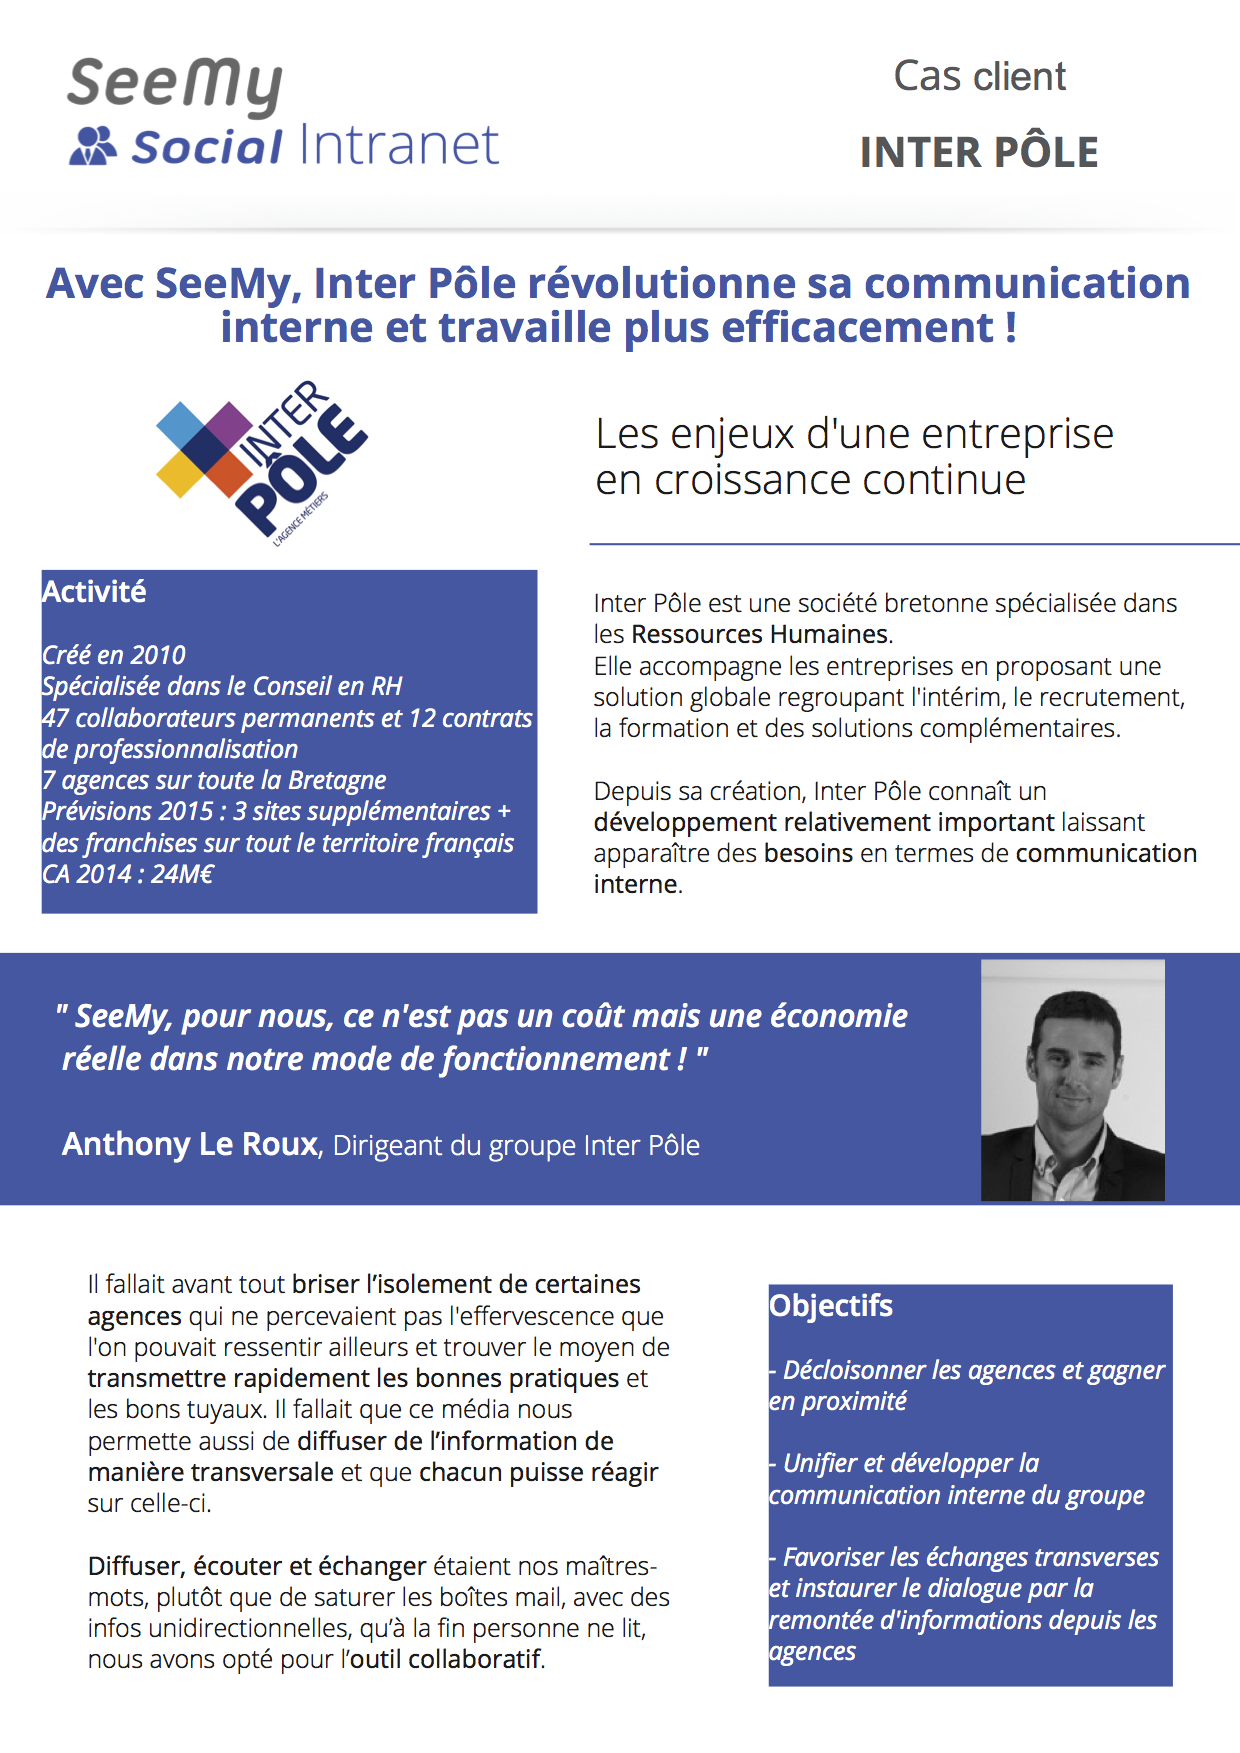 Cas client SeeMy Social Intranet - InterPôle1